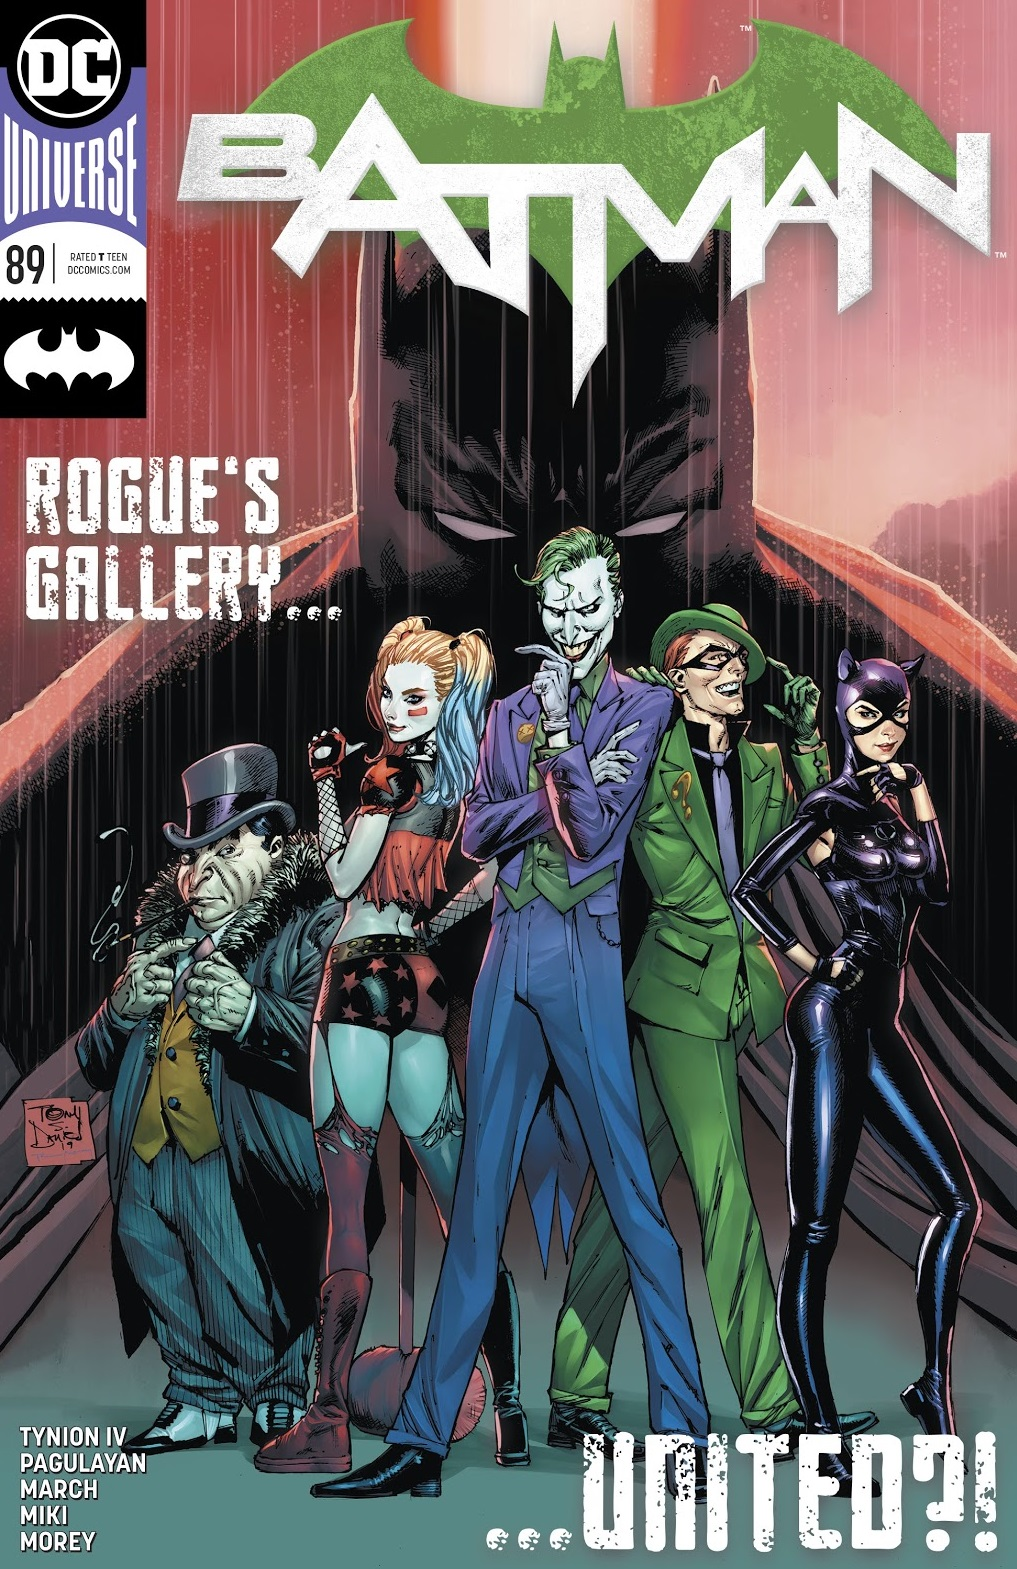 Batman Issue 89 review